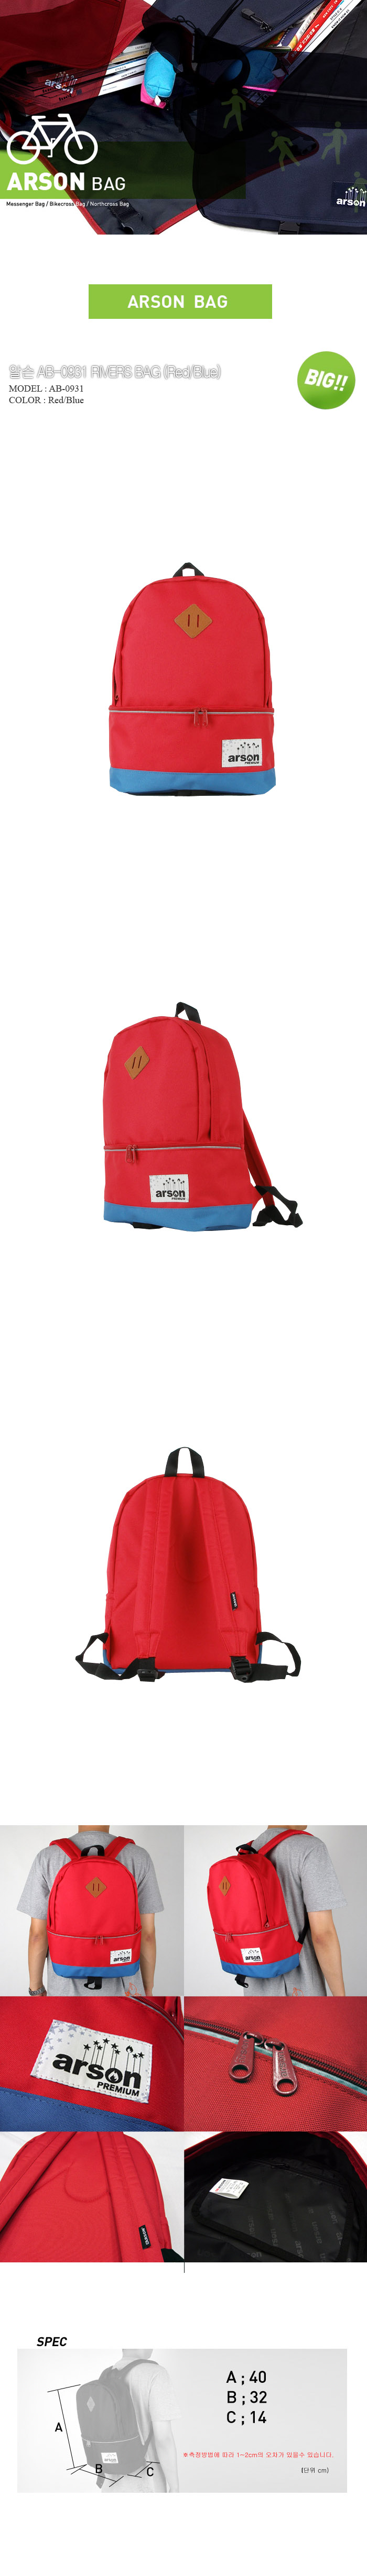 [ ARSON ] AB-0931 (Red/Blue)/Backpack School Bag